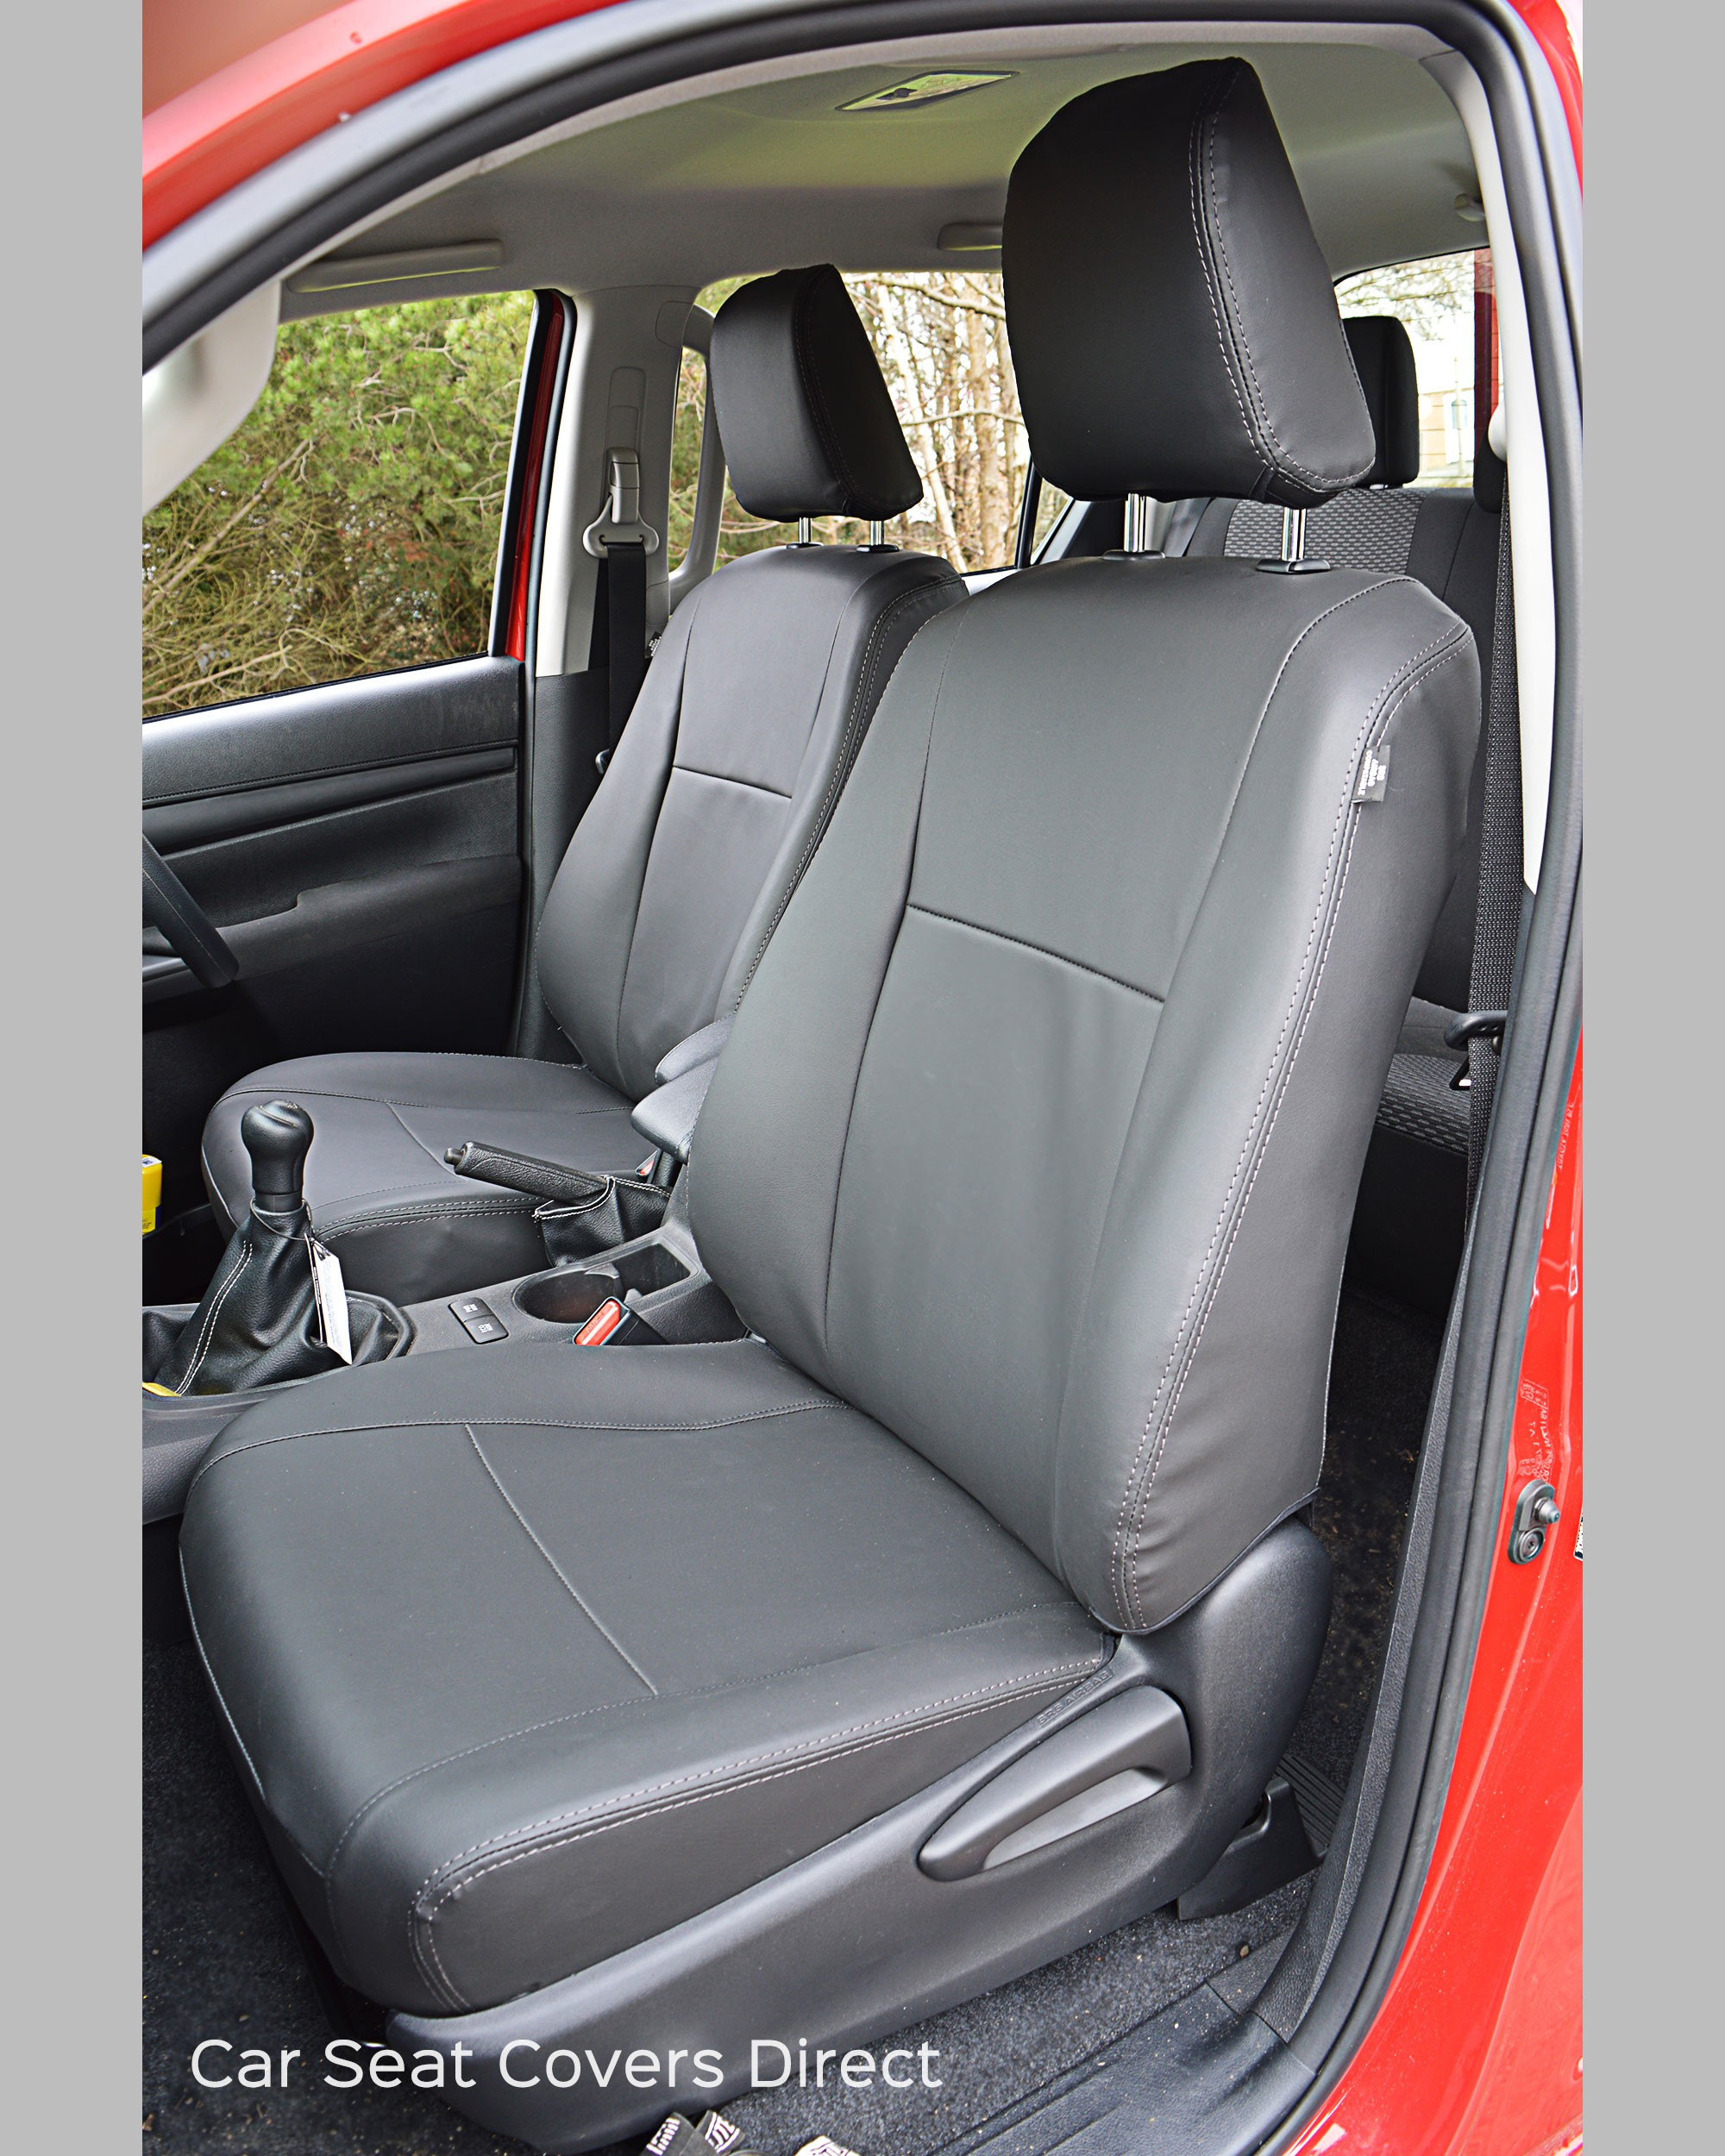 Toyota Hilux Seat Cover